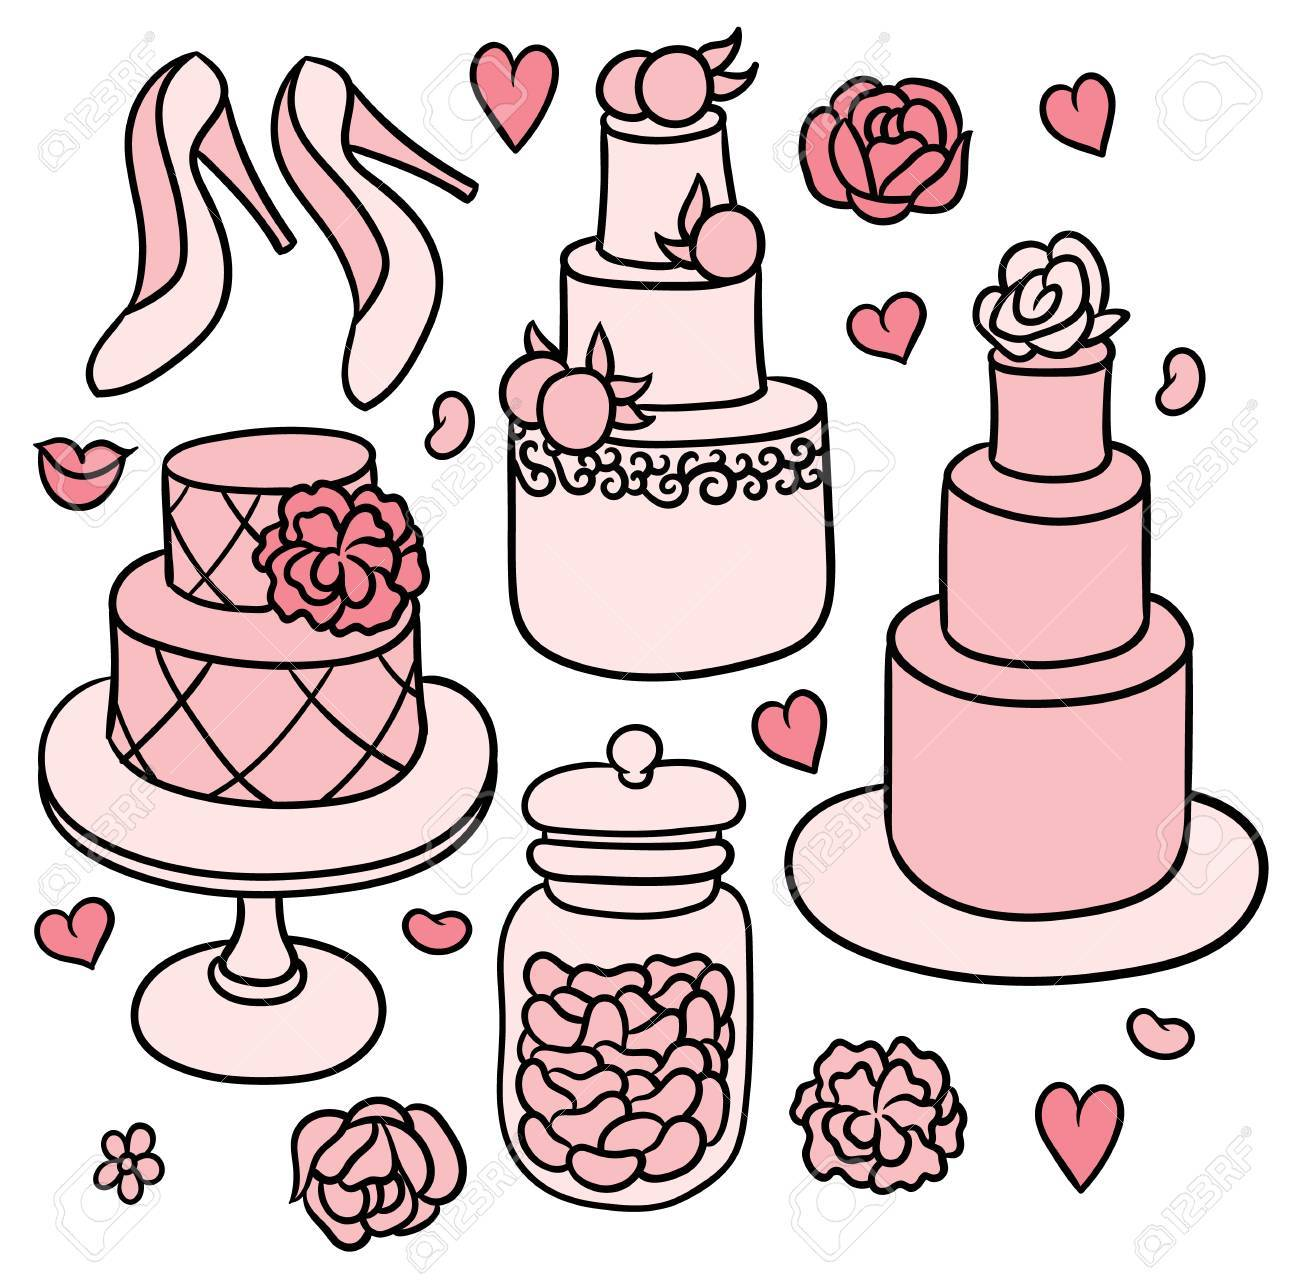 Free Wedding Stuff.Flowers Shoes Cakes And Hearts Sweet Romantic Wedding Stuff